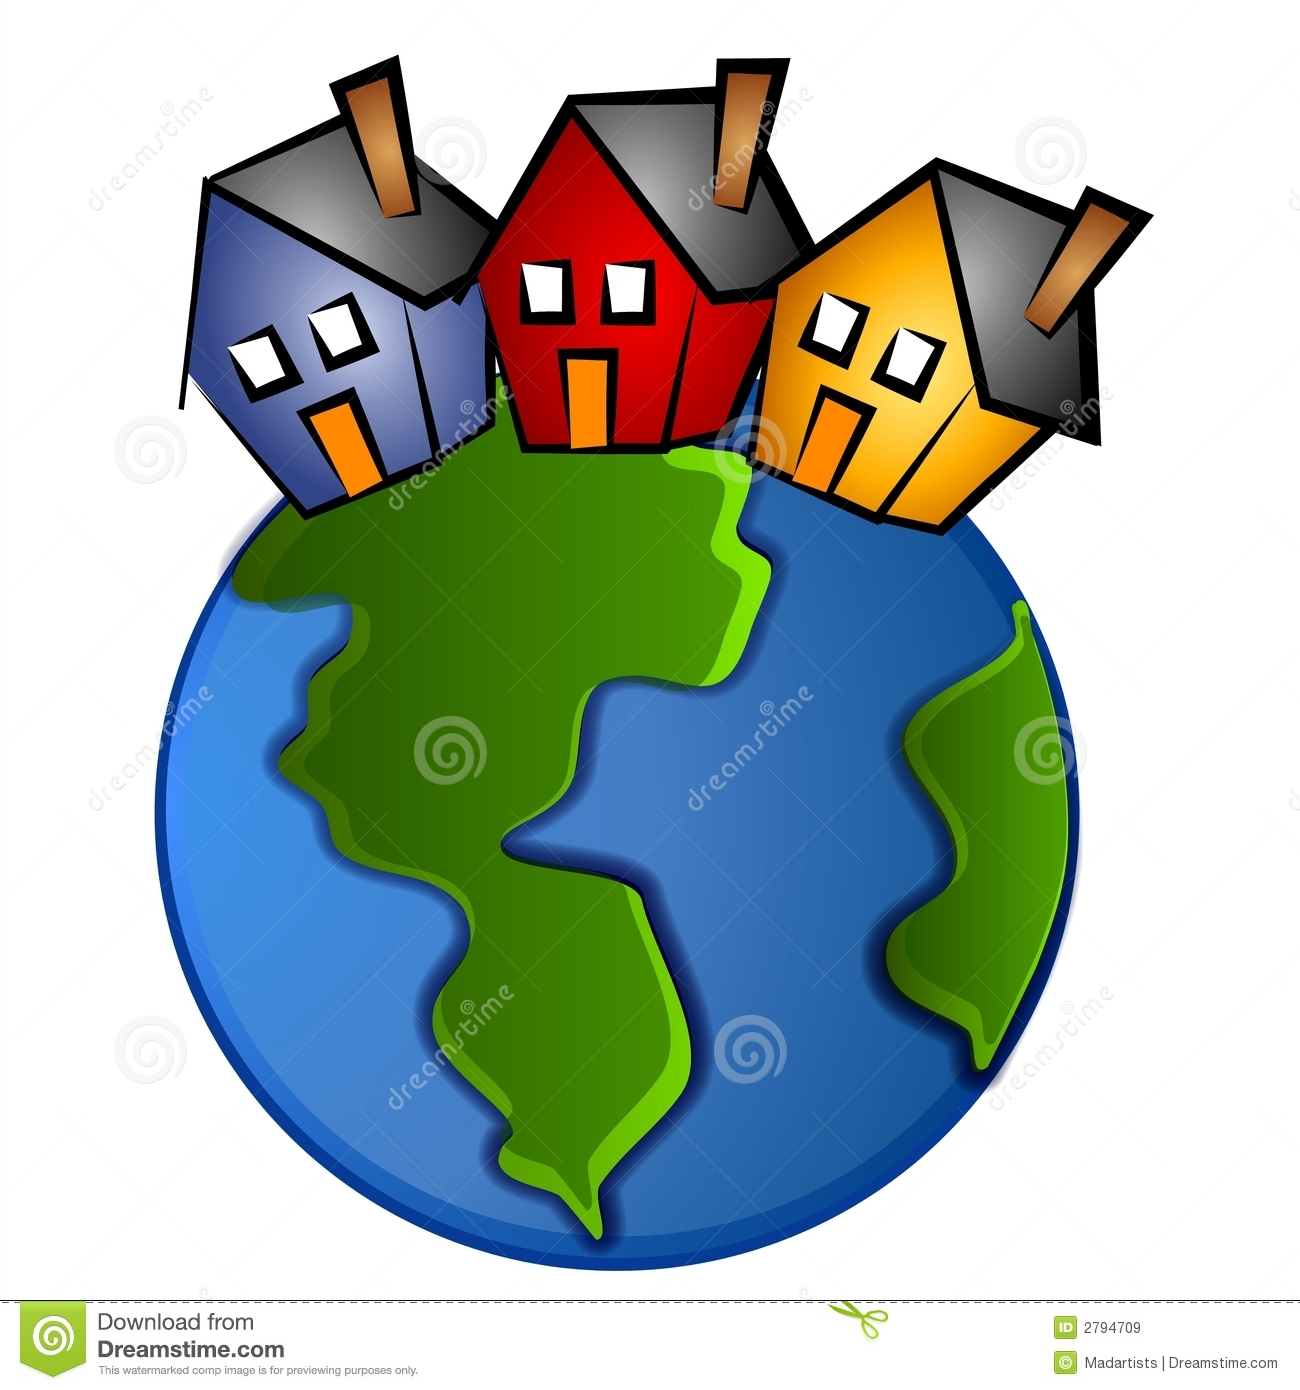 earth with 3 houses clip art stock illustration illustration of rh dreamstime com free stock clip art rx free stock clip art rx